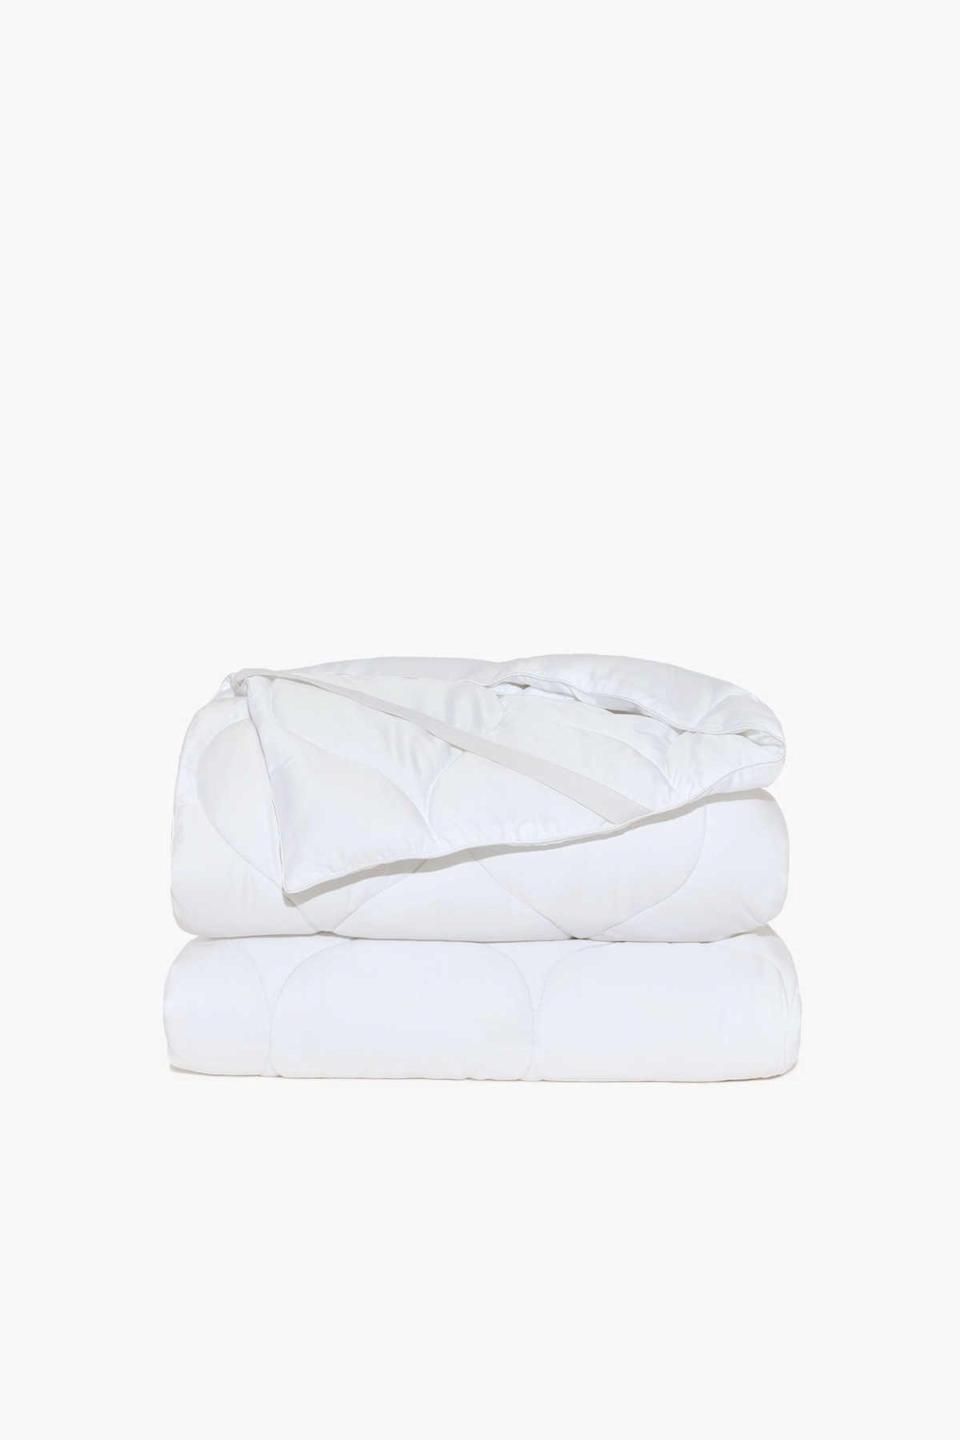 """<h2>Buffy Plushy Mattress Protector</h2><br>Buffy's mattress topper/protector is made from a combination of soft eucalyptus and fluffy recycled fill. The fill keeps plastic bottles out of landfills and protects the geese. Win-win, if you ask us. <br><br><strong>Eco-Sleepers Say:</strong> """"This mattress protector provides a cloud-like layer between you and your mattress. Not only does it make your bed softer and cozier, but it also helps you sleep cooler. We purchased ours after falling in love with the Buffy comforter. I highly recommend that you snuggle down too!"""" <br>— <em>Julie G., Buffy reviewer</em><br><em><br>Shop <strong><a href=""""https://buffy.co/product-listing/all"""" rel=""""nofollow noopener"""" target=""""_blank"""" data-ylk=""""slk:Buffy"""" class=""""link rapid-noclick-resp"""">Buffy</a></strong></em> <br><br><strong>Buffy</strong> Plushy Mattress Protector, $, available at <a href=""""https://go.skimresources.com/?id=30283X879131&url=https%3A%2F%2Fbuffy.co%2Fproducts%2Fmattress-protector%3Fsize%3DQueen"""" rel=""""nofollow noopener"""" target=""""_blank"""" data-ylk=""""slk:Buffy"""" class=""""link rapid-noclick-resp"""">Buffy</a>"""